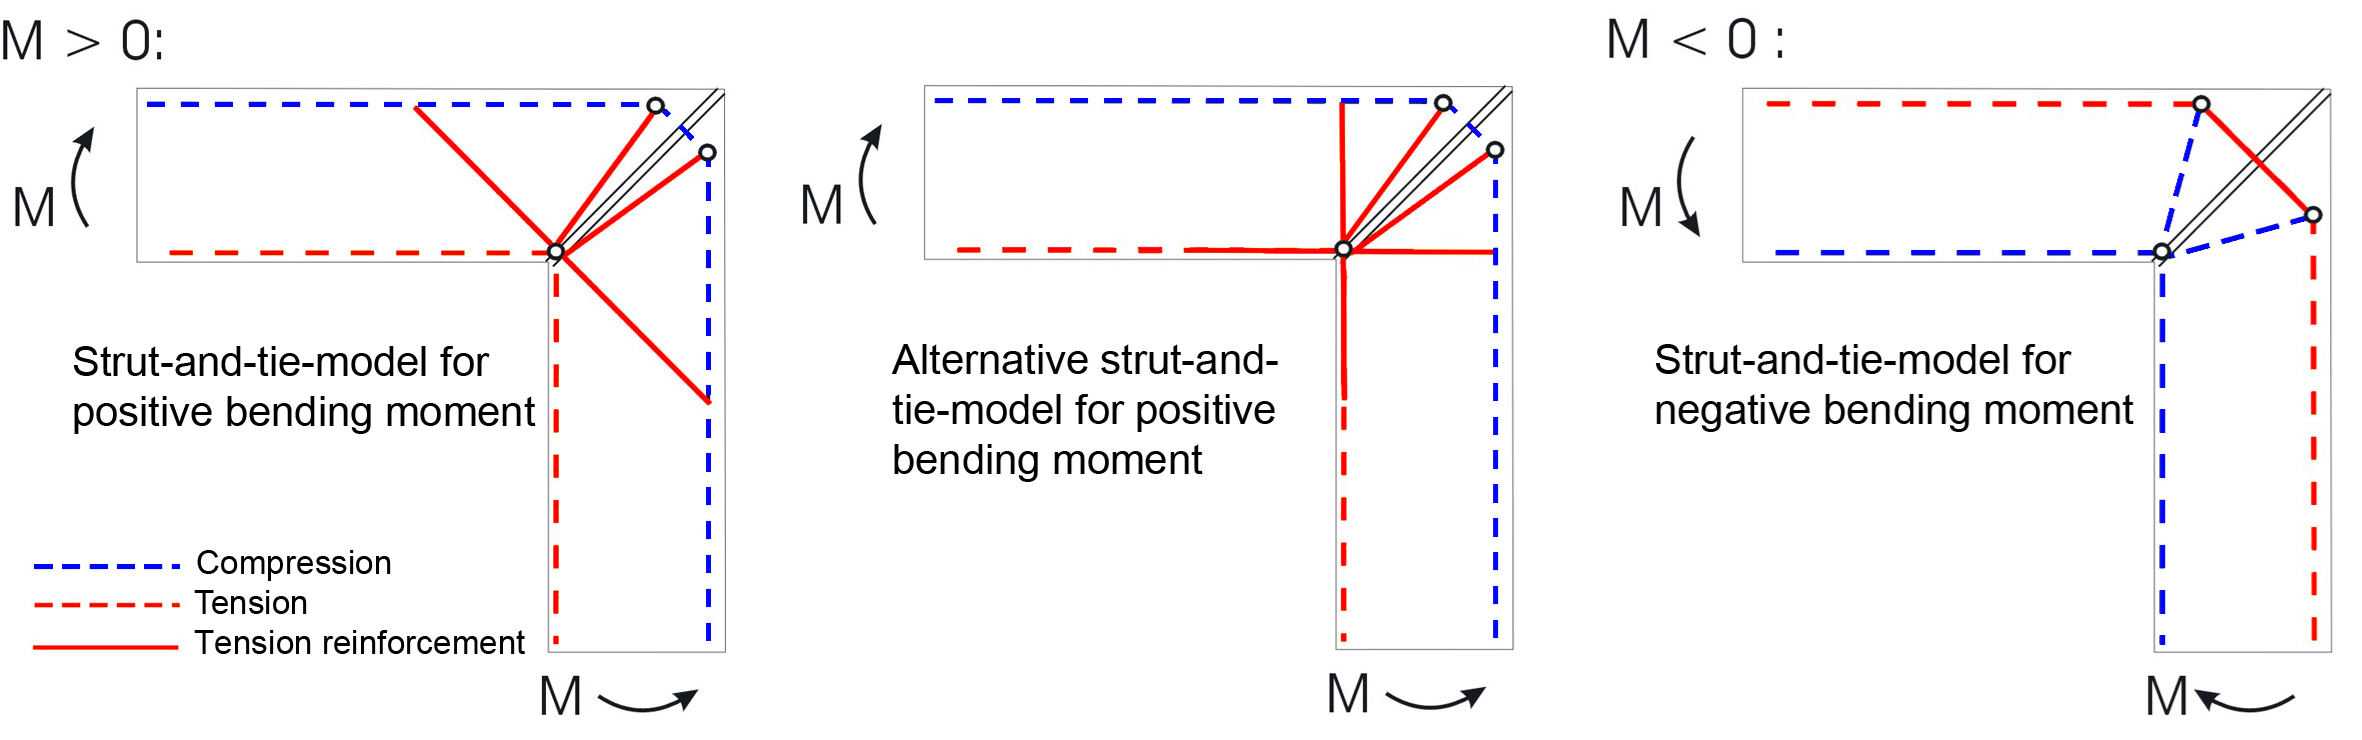 Figure 2: Simple strut-and-tie-models for the layout of screw reinforcements for rigid frame corners with positive and negative bending moments